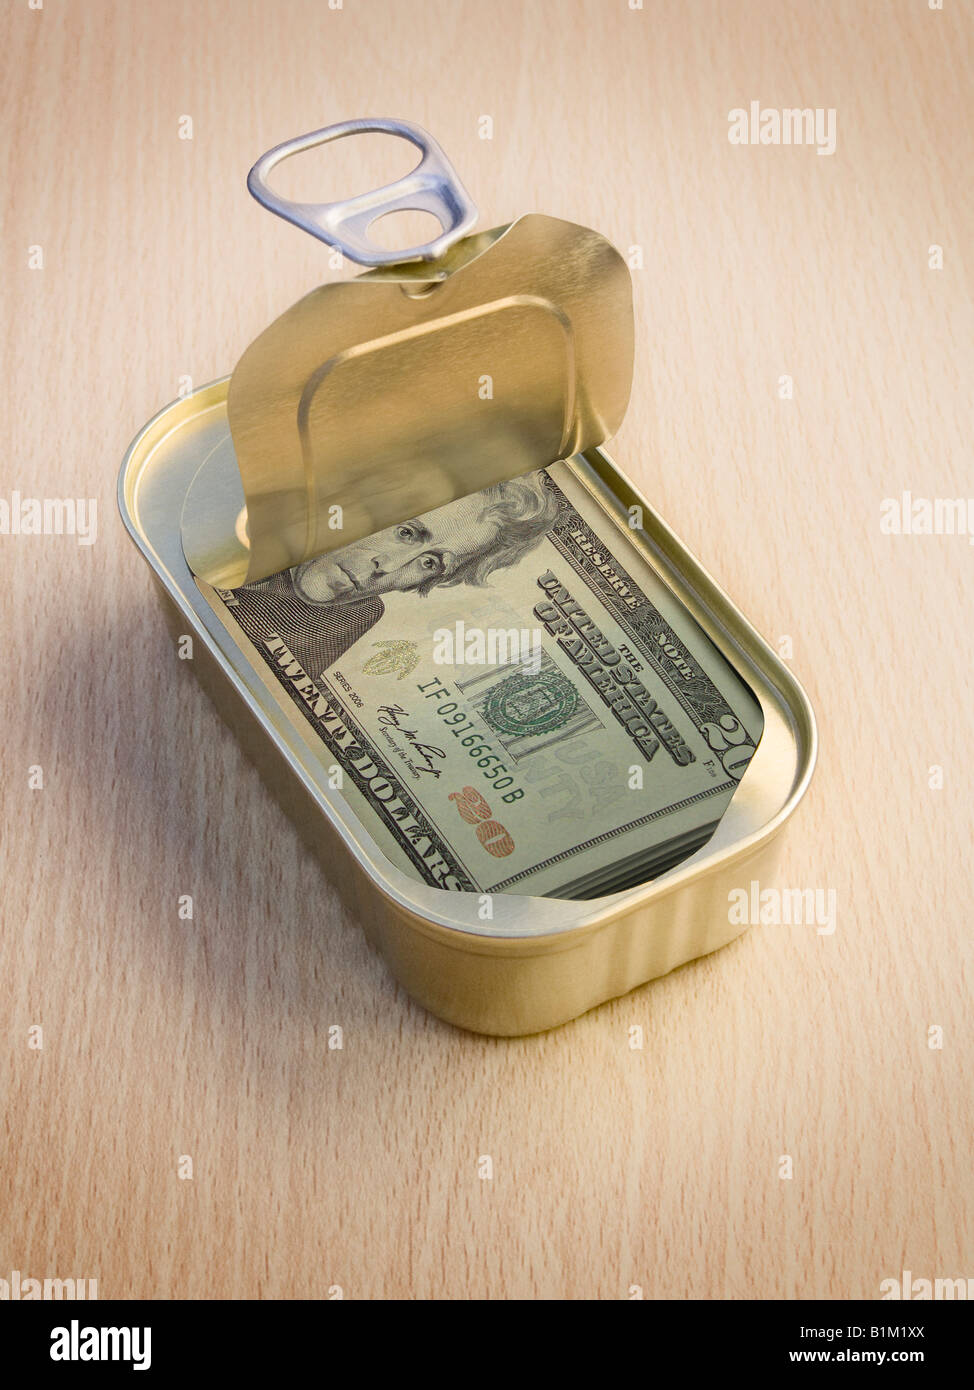 Ring Pull Tin containing  20 Dollar notes on wooden surface - Concept - Stock Image